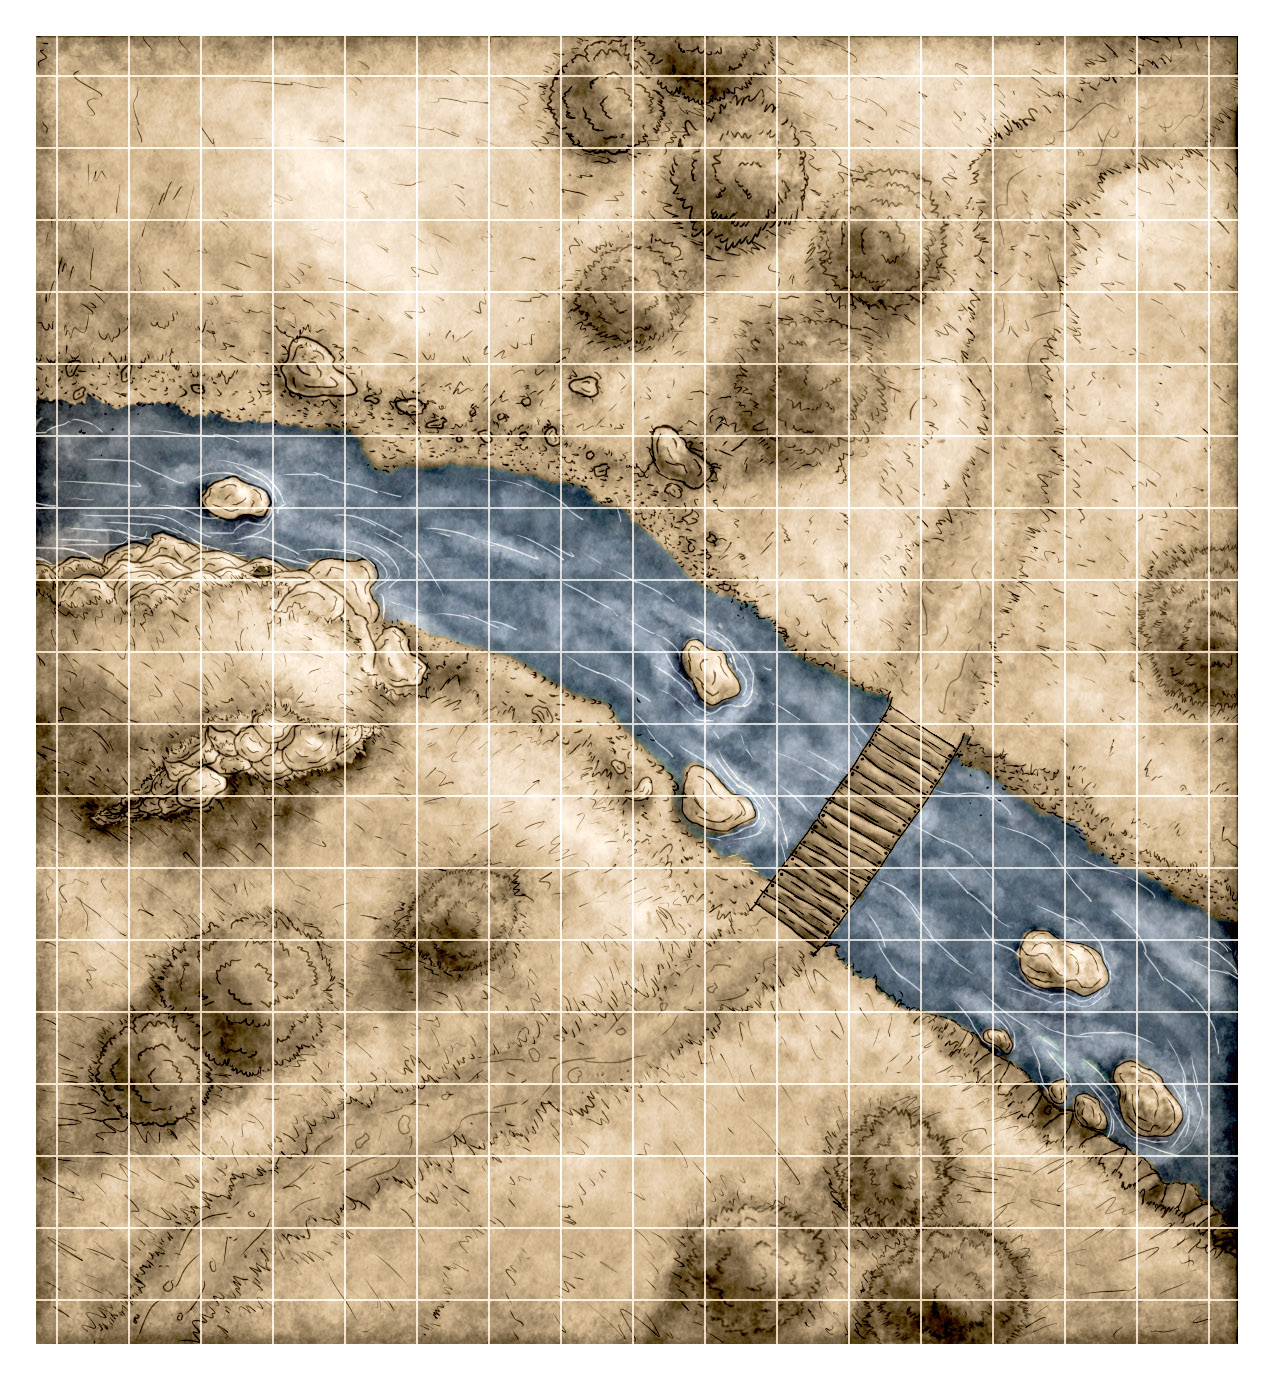 River Crossing Encounter map alternate provided by Lukc